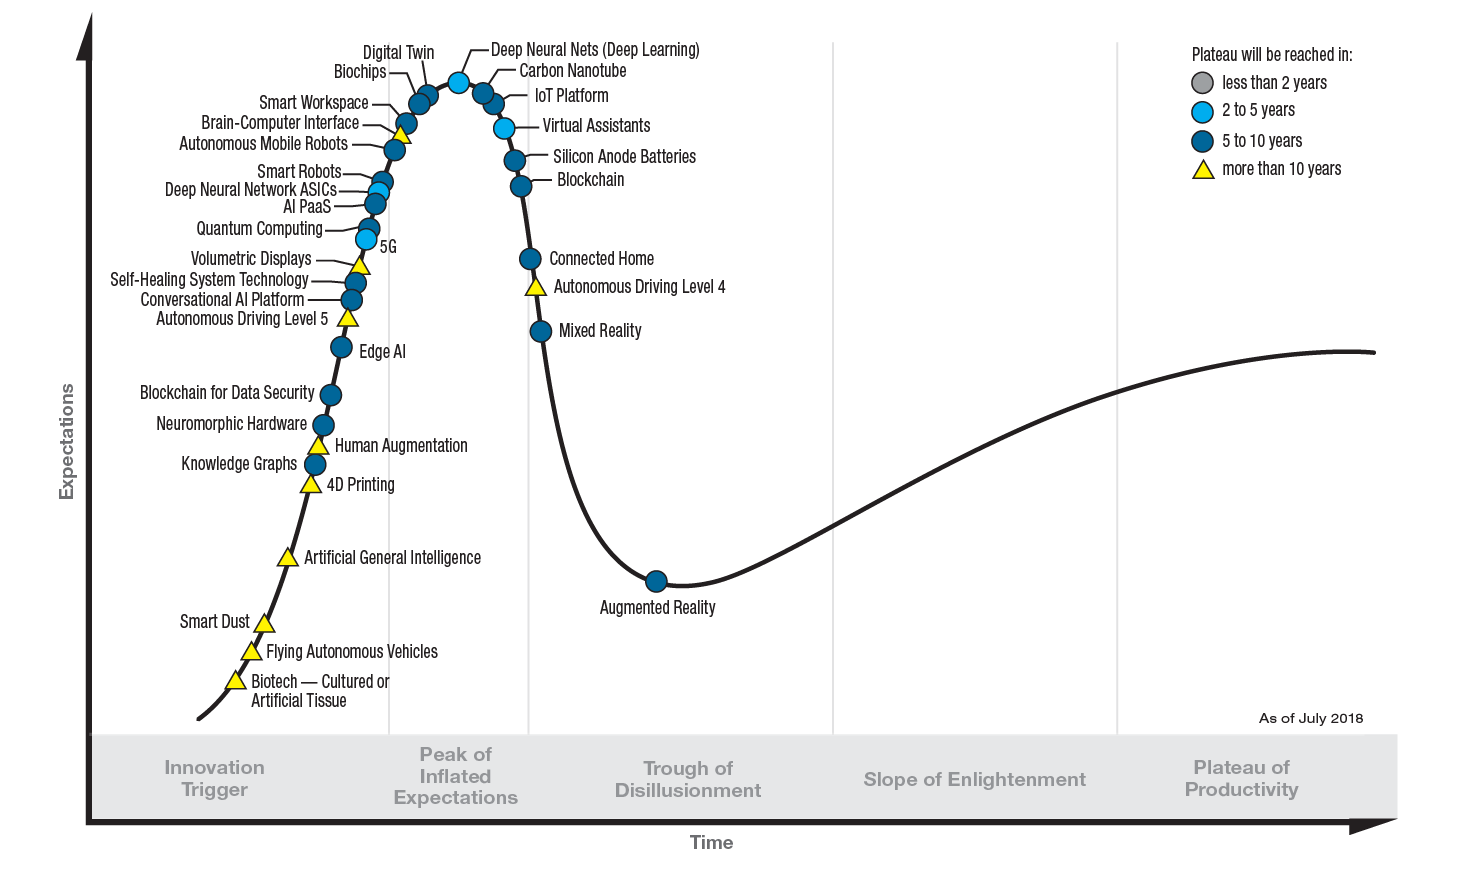 PR_490866_5_Trends_in_the_Emerging_Tech_Hype_Cycle_2018_Hype_Cycle.png